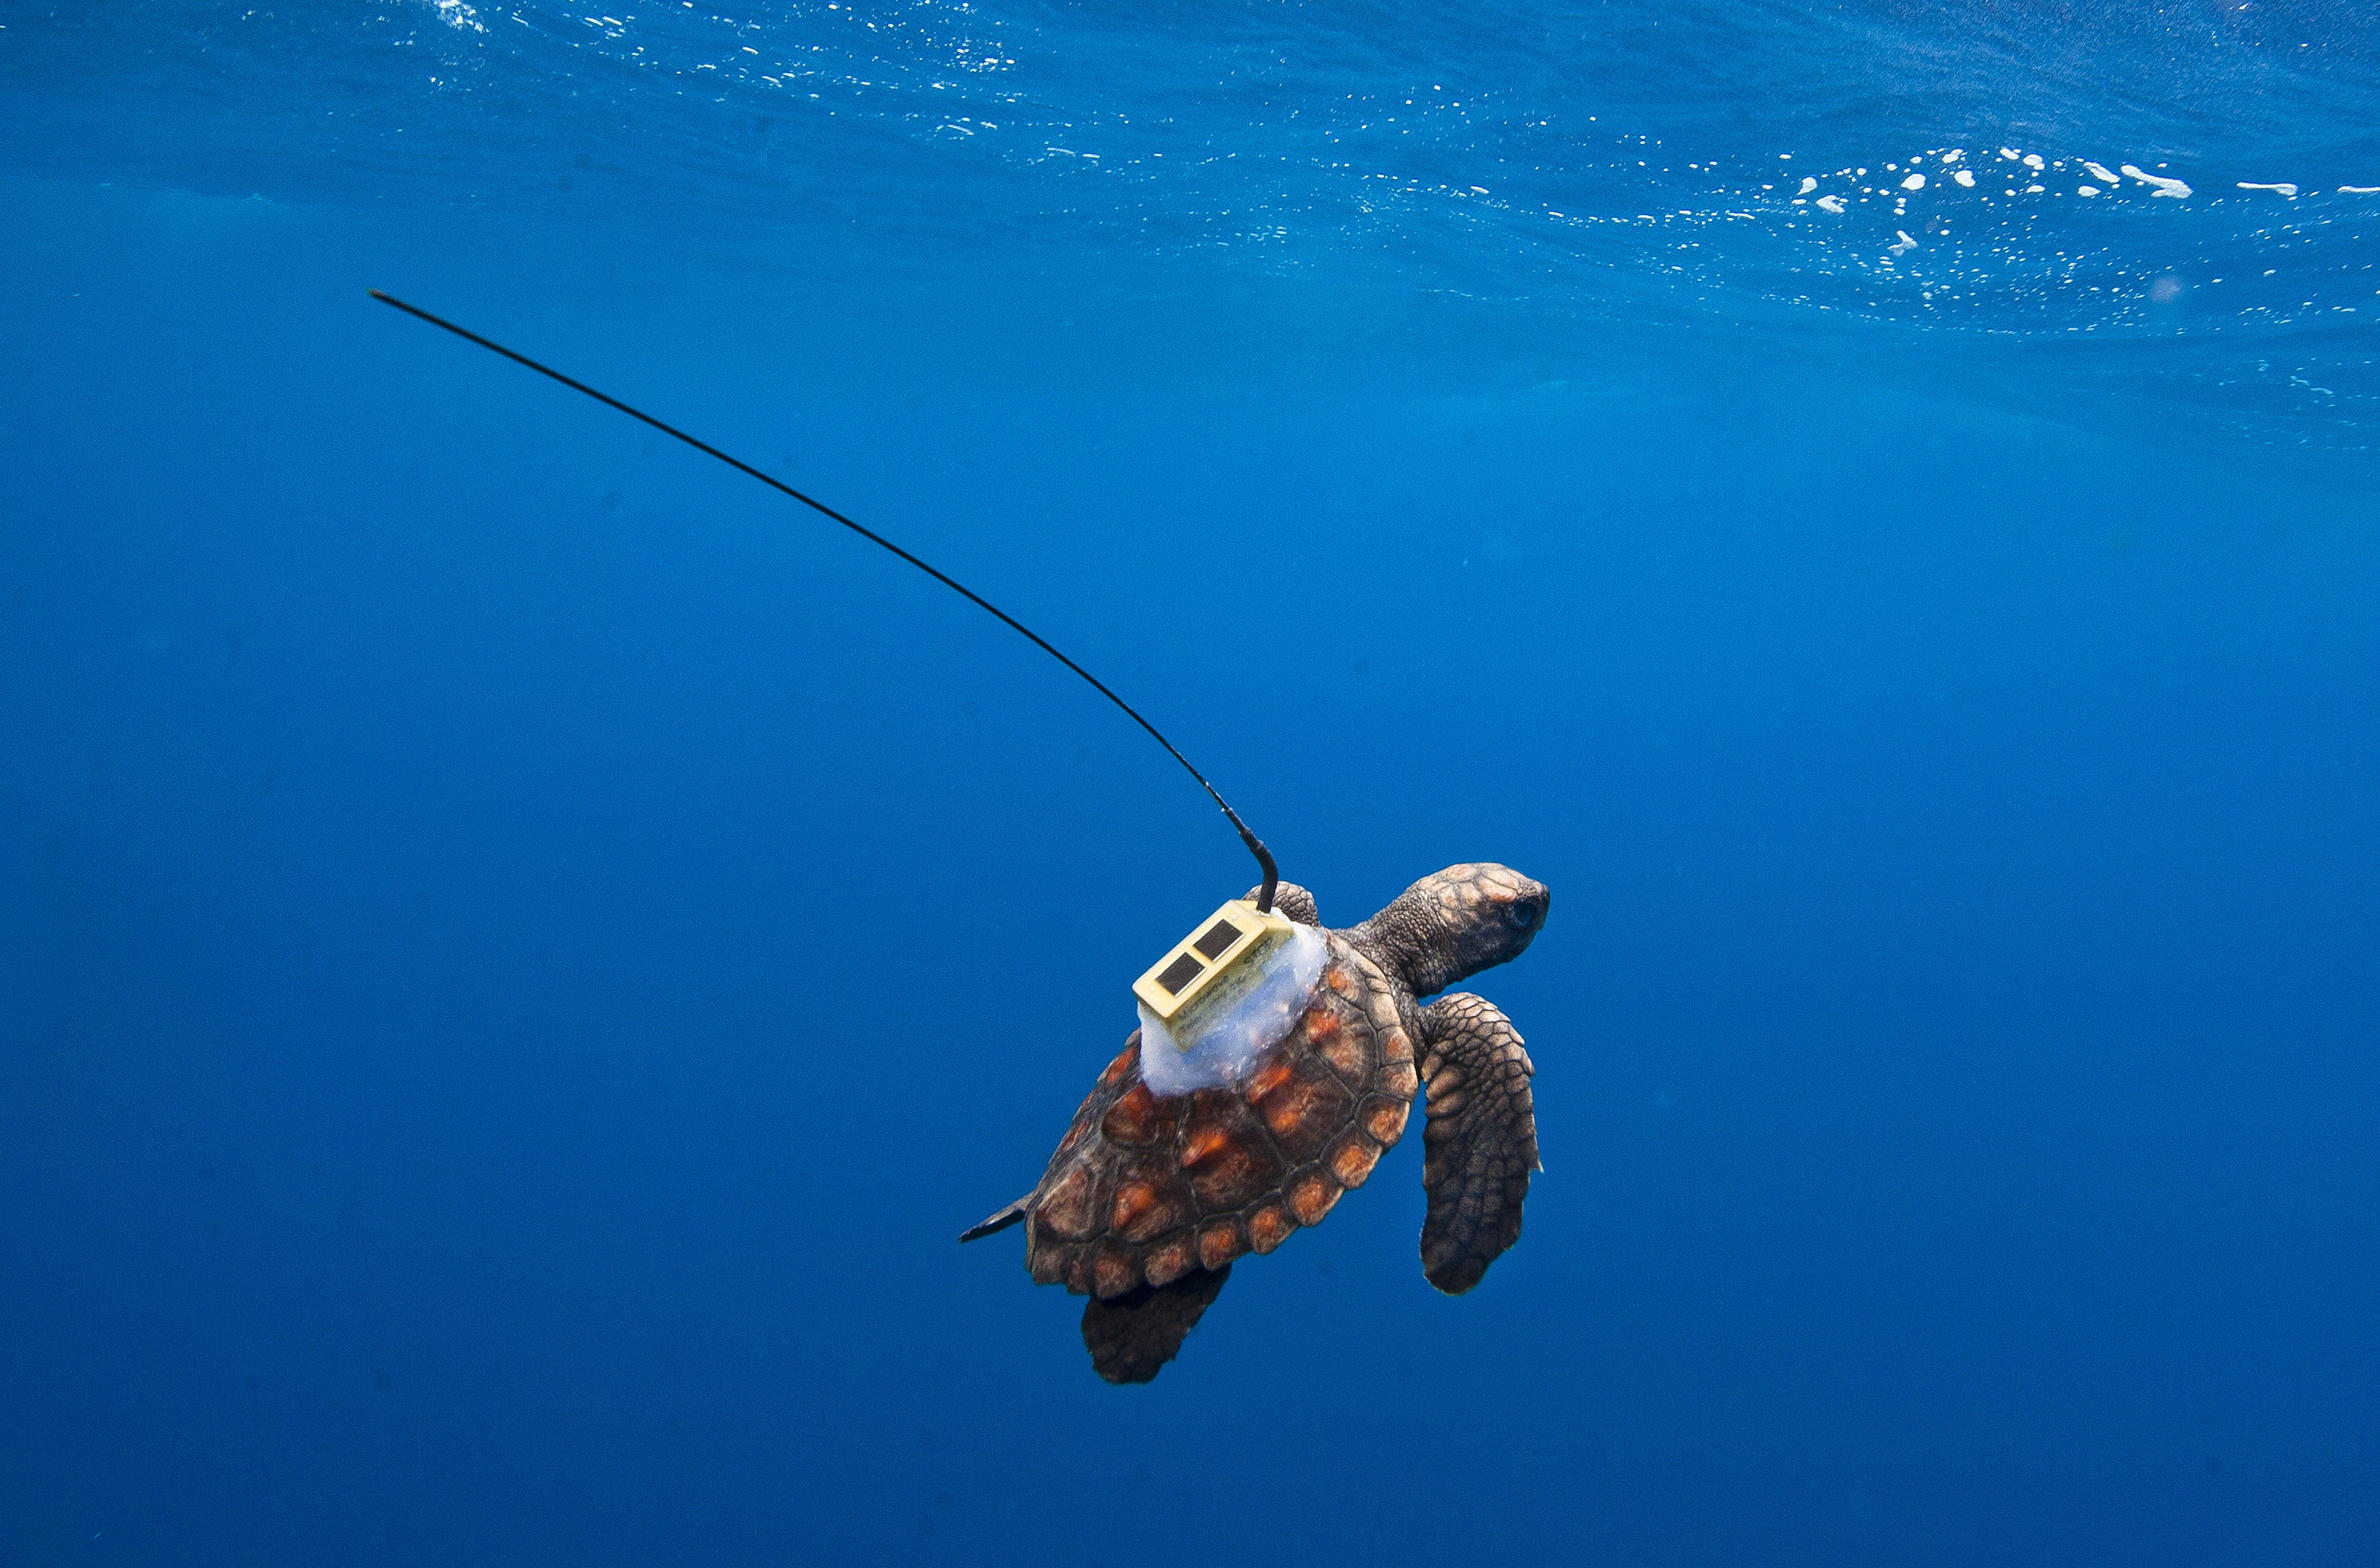 A young loggerhead is released off the coast of Bahia, Brazil. The satellite tag transmitts the turtle's location as it breaks the surface. Image credit: Projecto TAMAR.